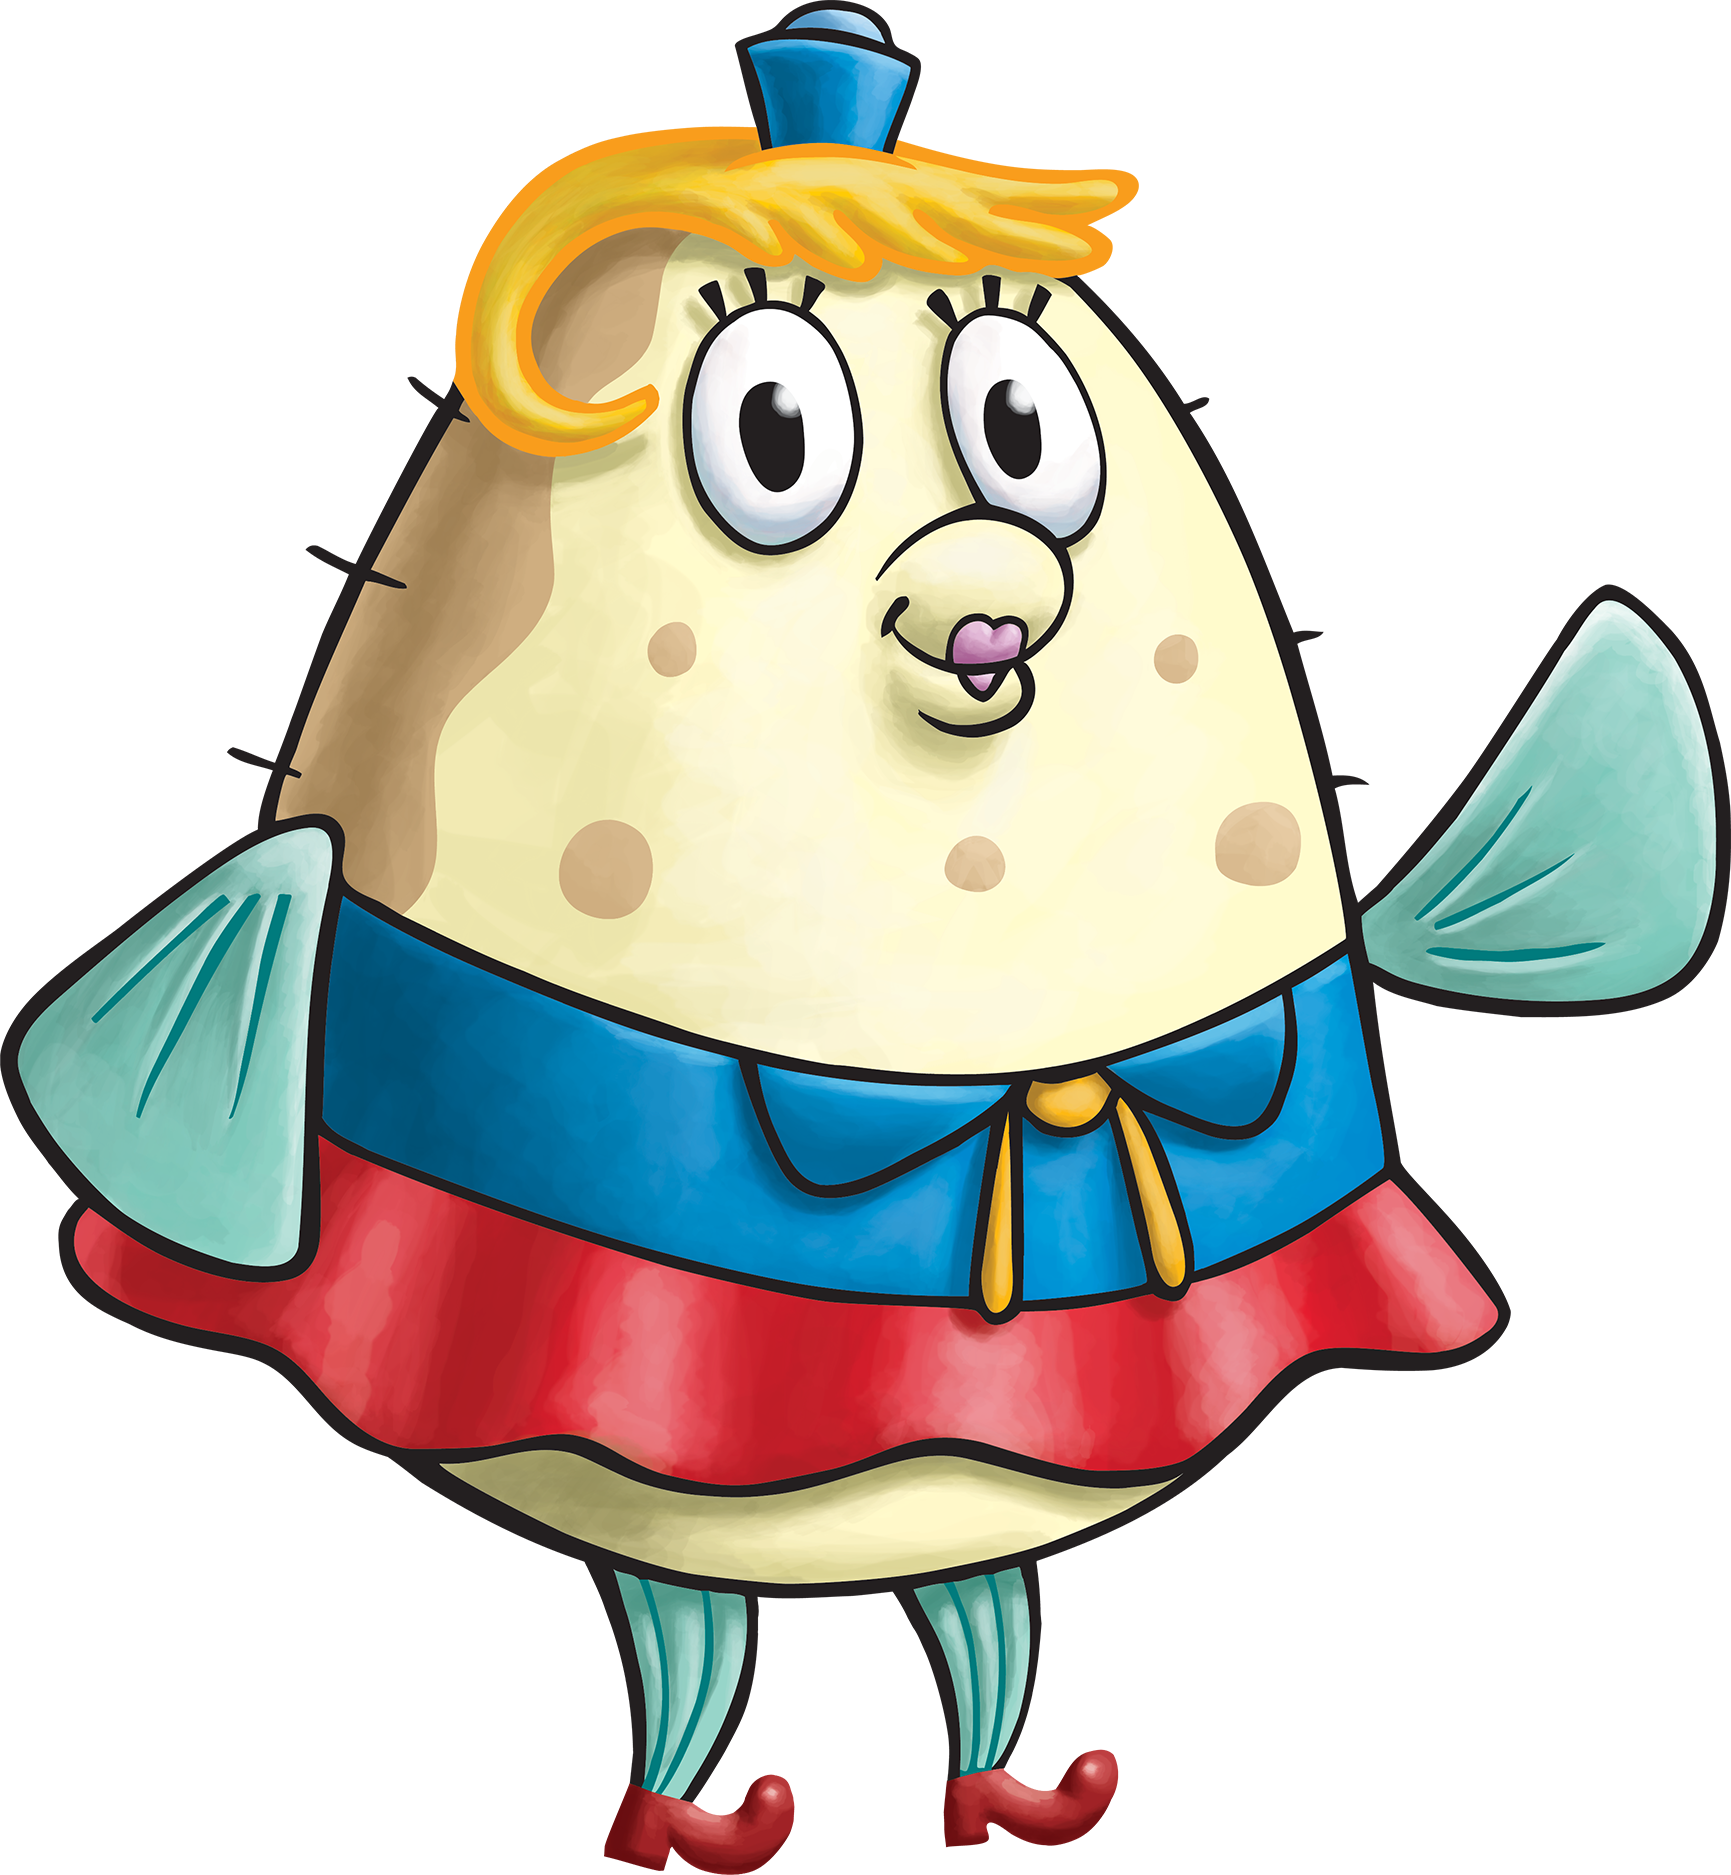 Uncategorized Mrs Puff mrs puff encyclopedia spongebobia fandom powered by wikia